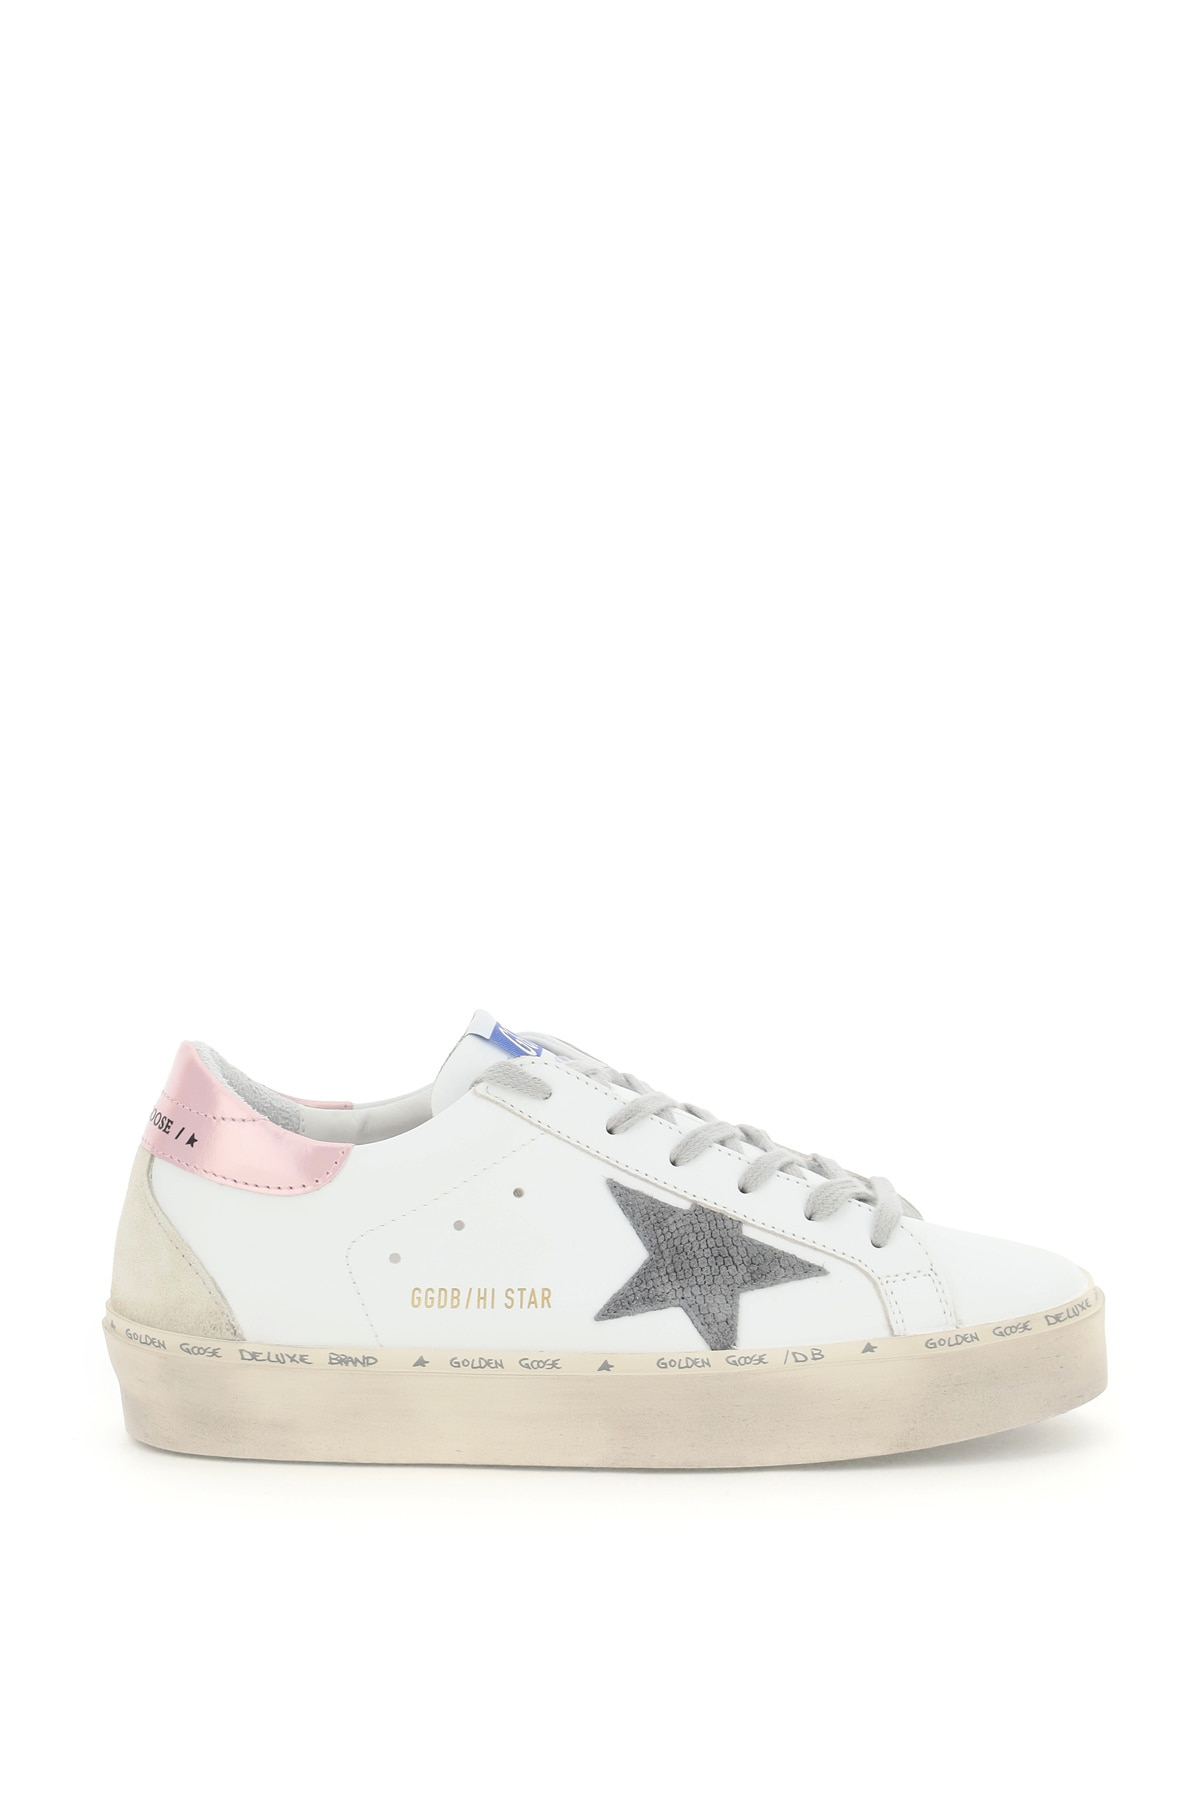 GOLDEN GOOSE HI STAR LEATHER SNEAKERS 37 White, Grey, Pink Leather